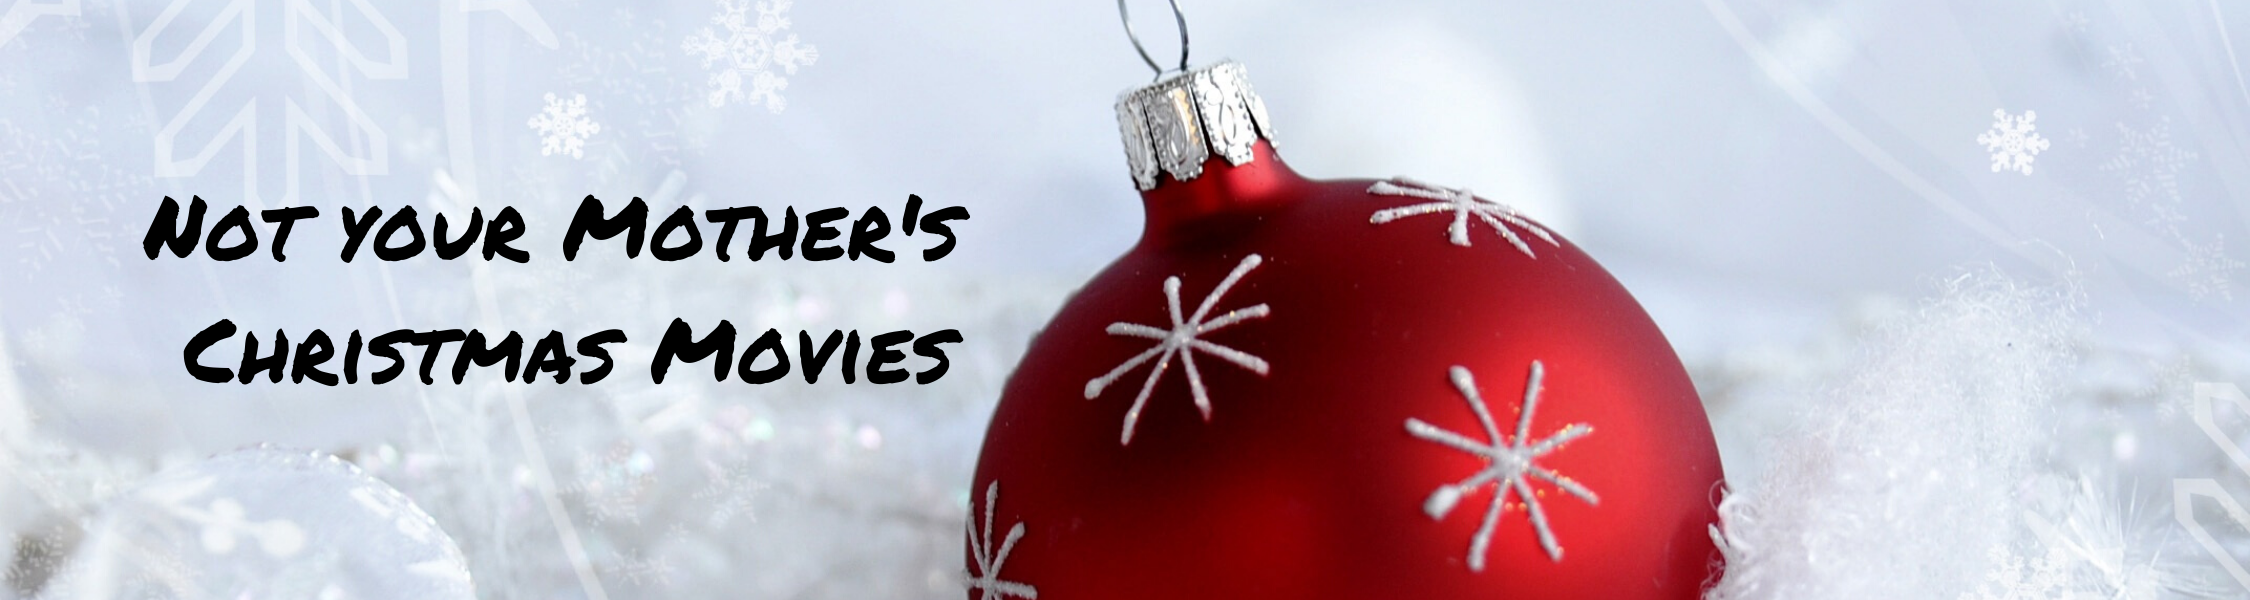 Not Your Mother's Christmas Movies